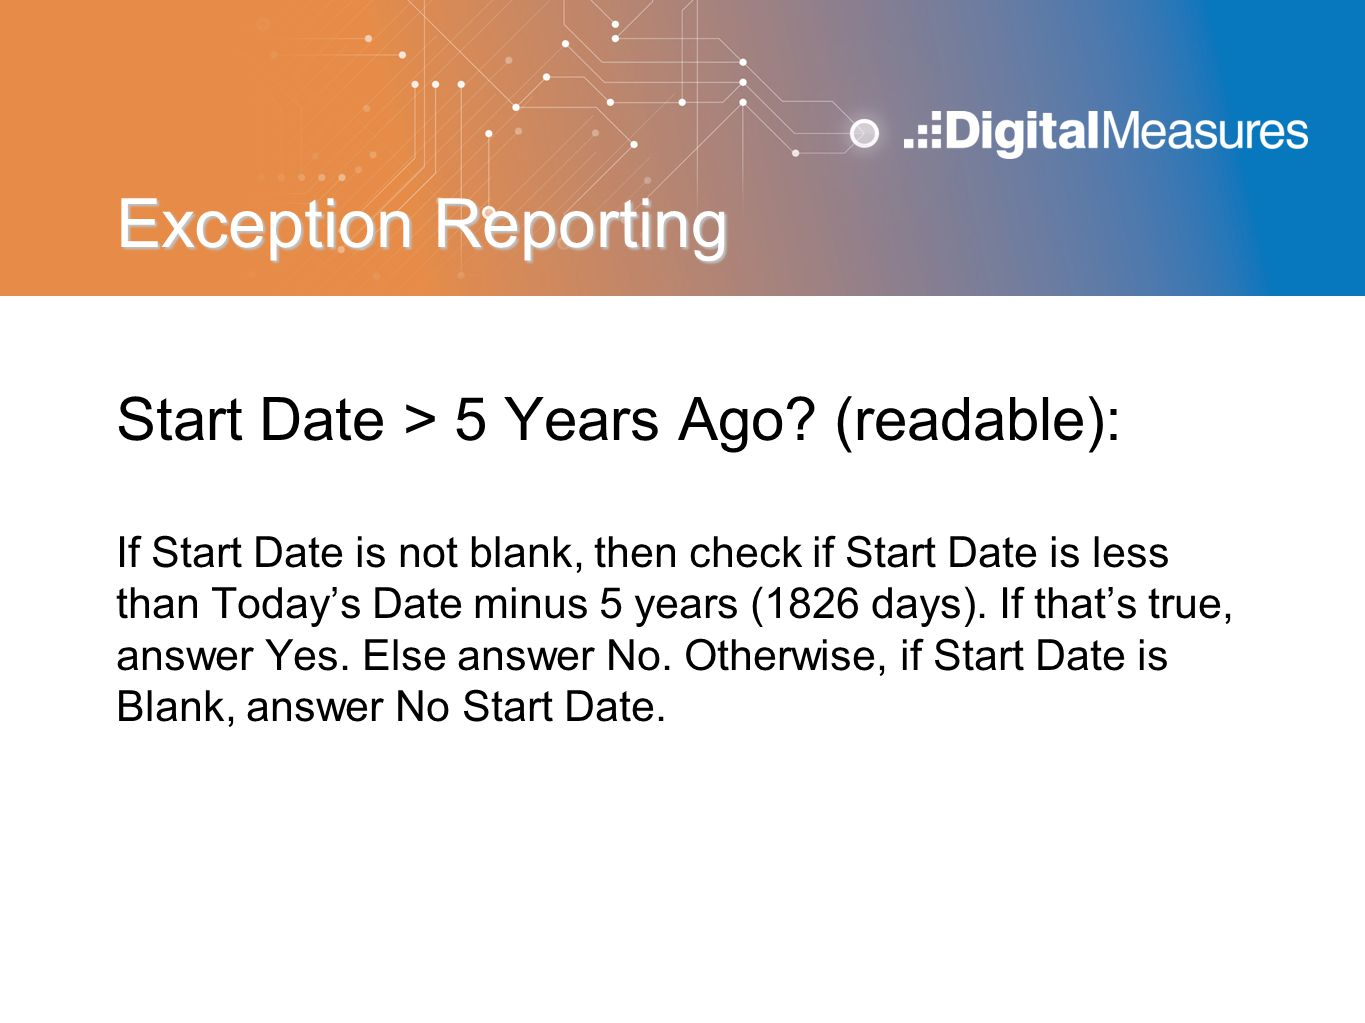 Exception Reporting Start Date > 5 Years Ago (readable):